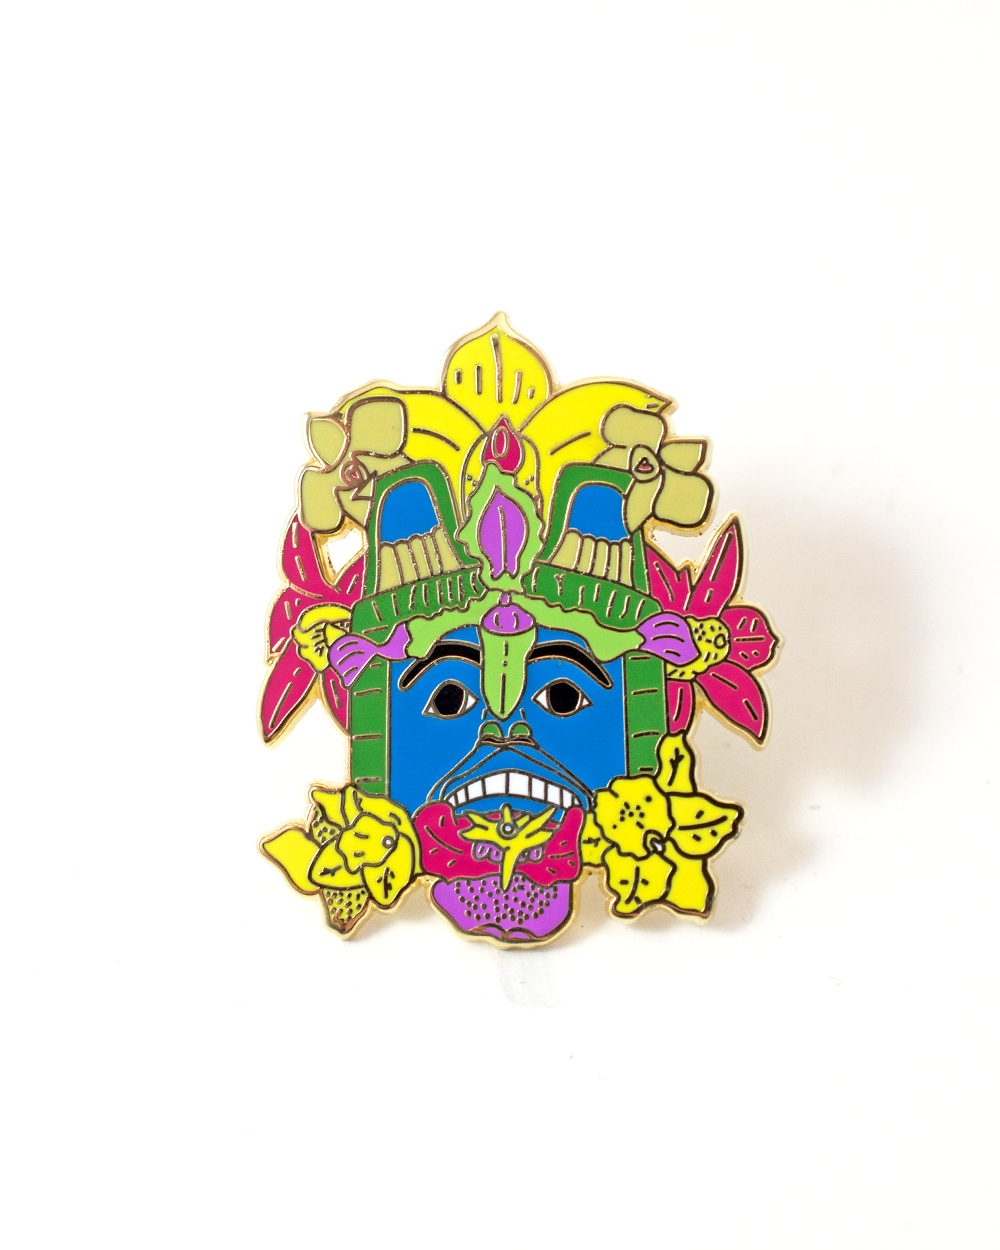 Flower Mask Enamel Pin